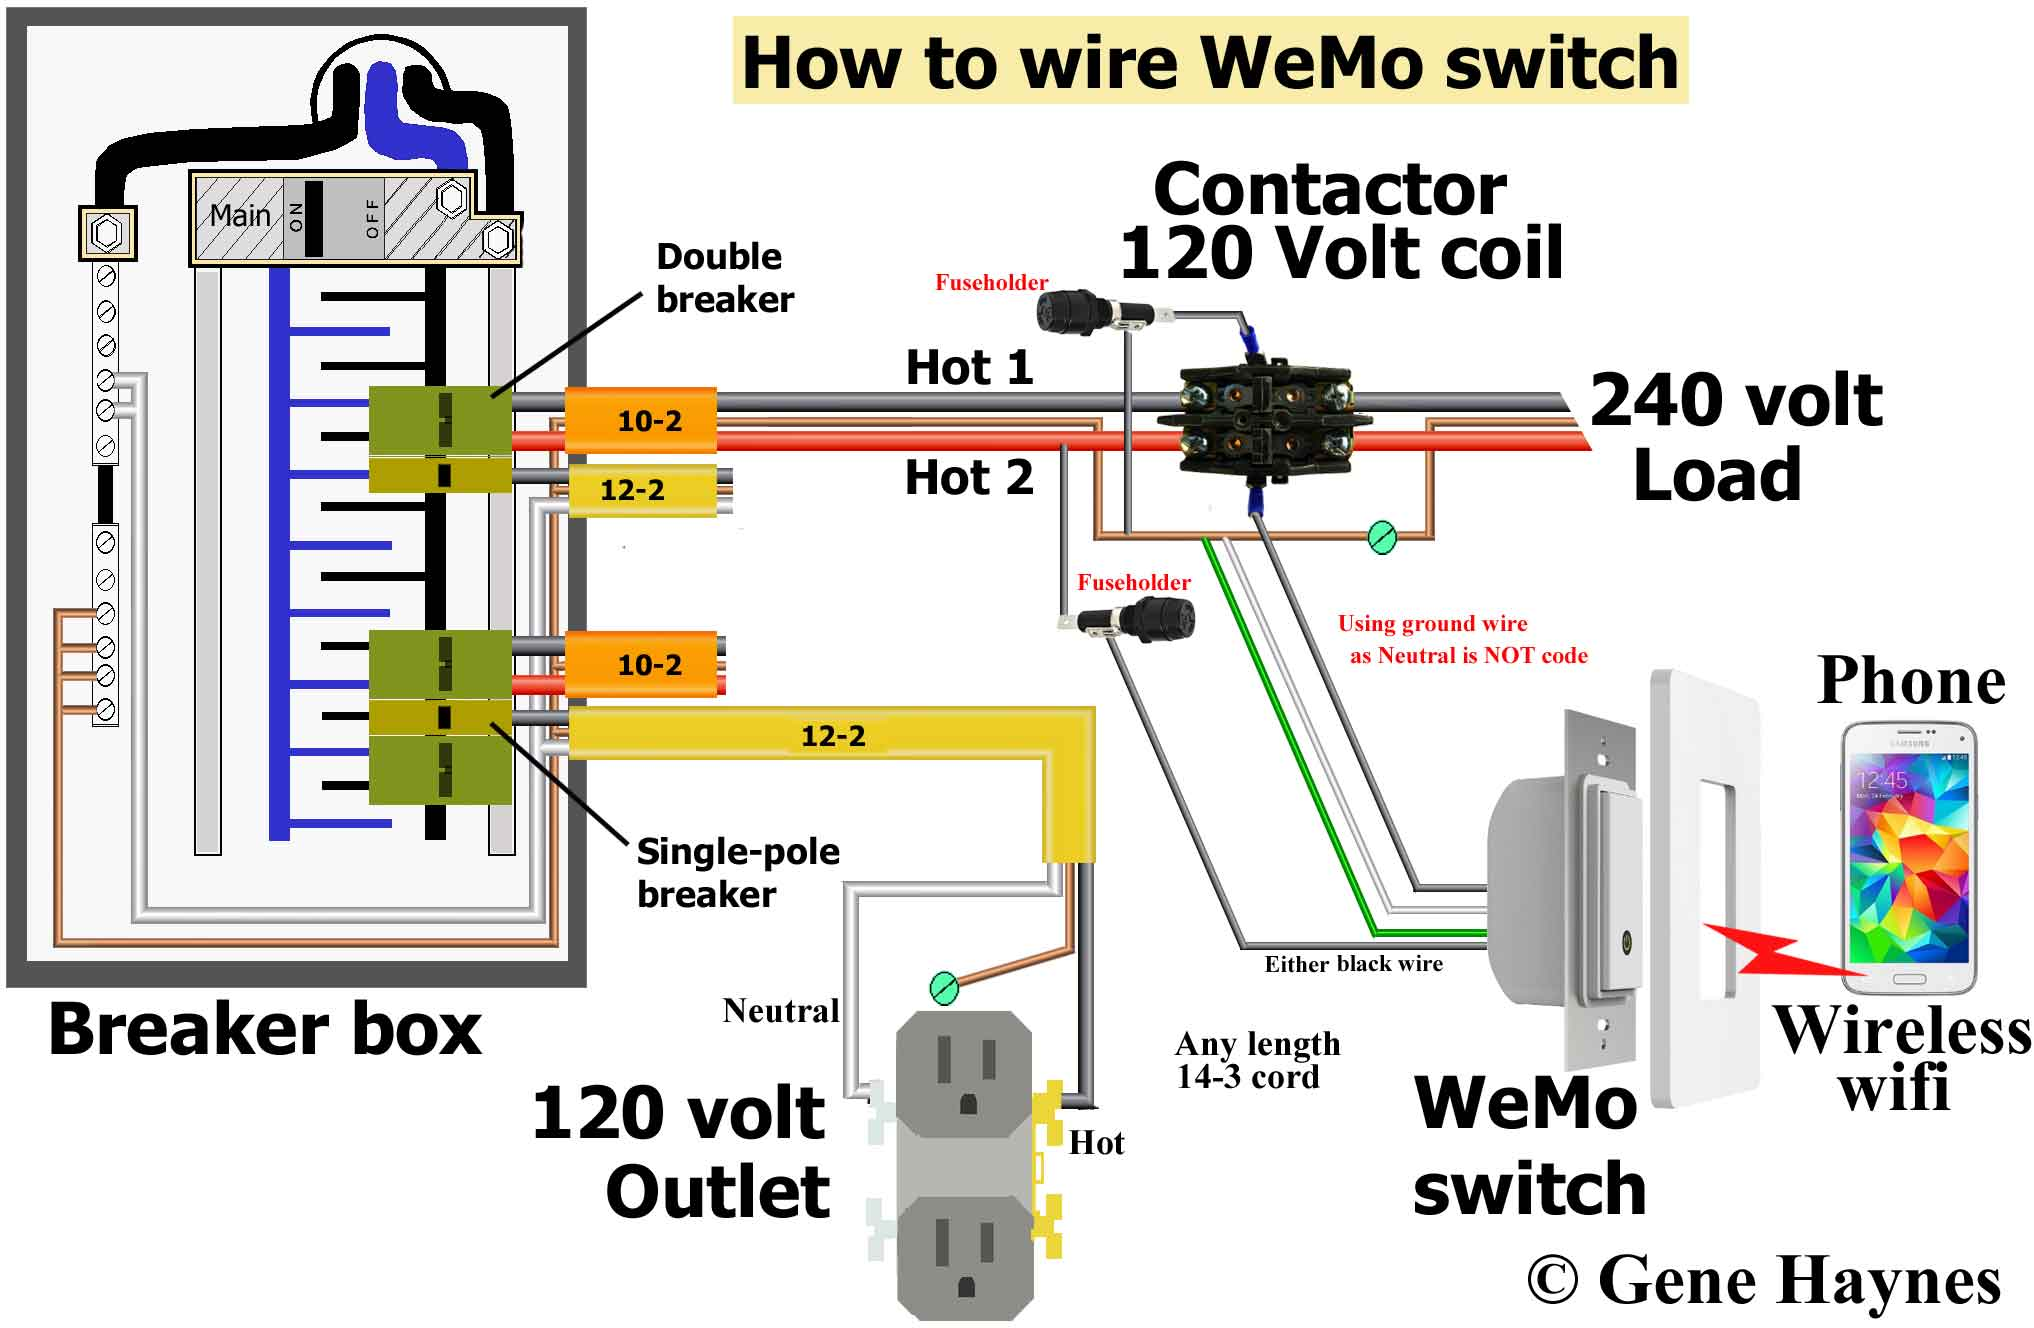 WeMo switch wiring illustration 33 not code control 240 volt with wemo WeMo Light Switch Installation at webbmarketing.co